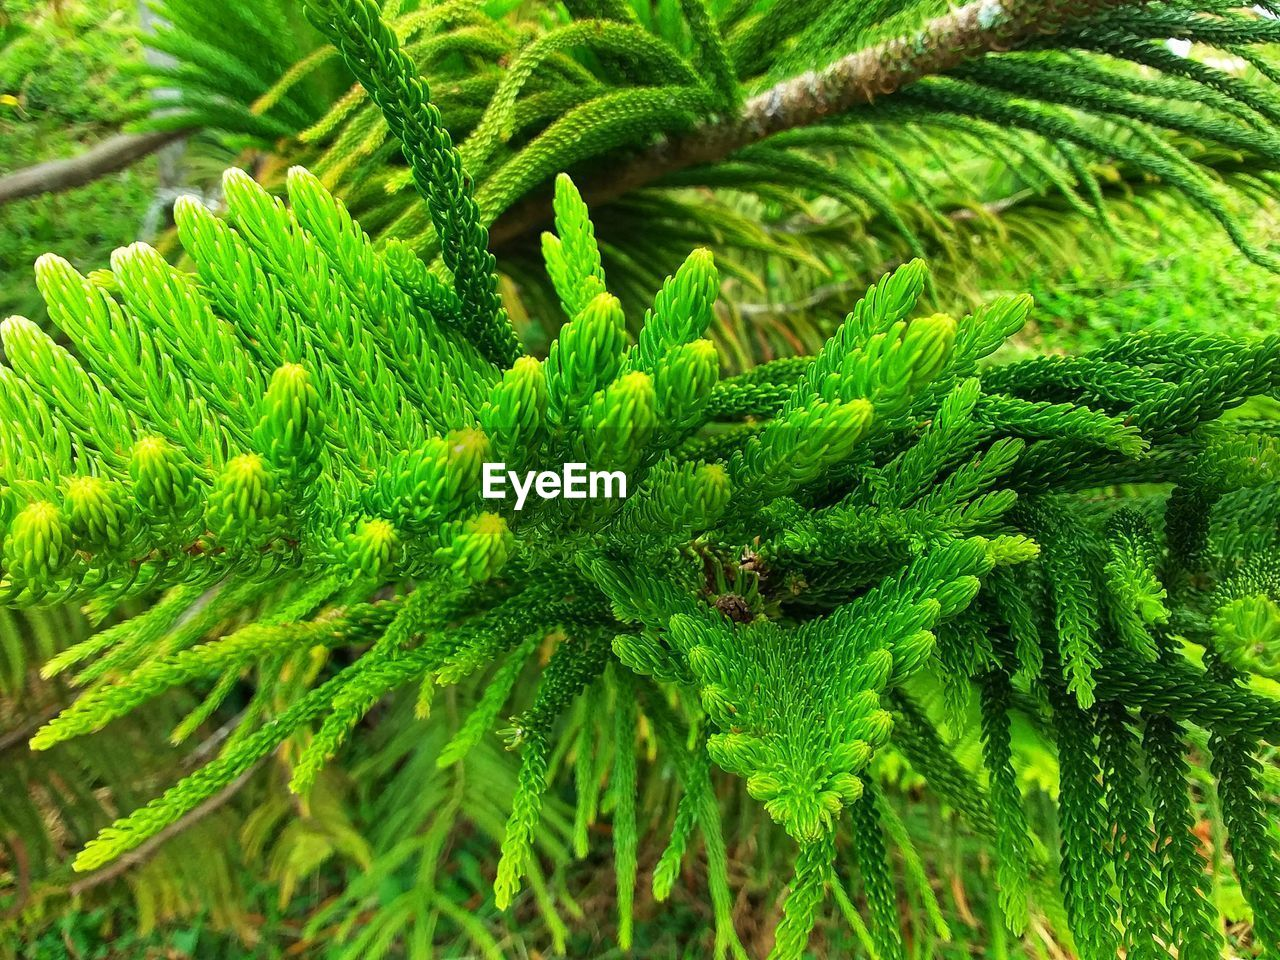 green color, growth, plant, leaf, plant part, close-up, nature, day, beauty in nature, no people, focus on foreground, outdoors, tree, high angle view, healthcare and medicine, pine tree, herb, fragility, selective focus, branch, needle - plant part, coniferous tree